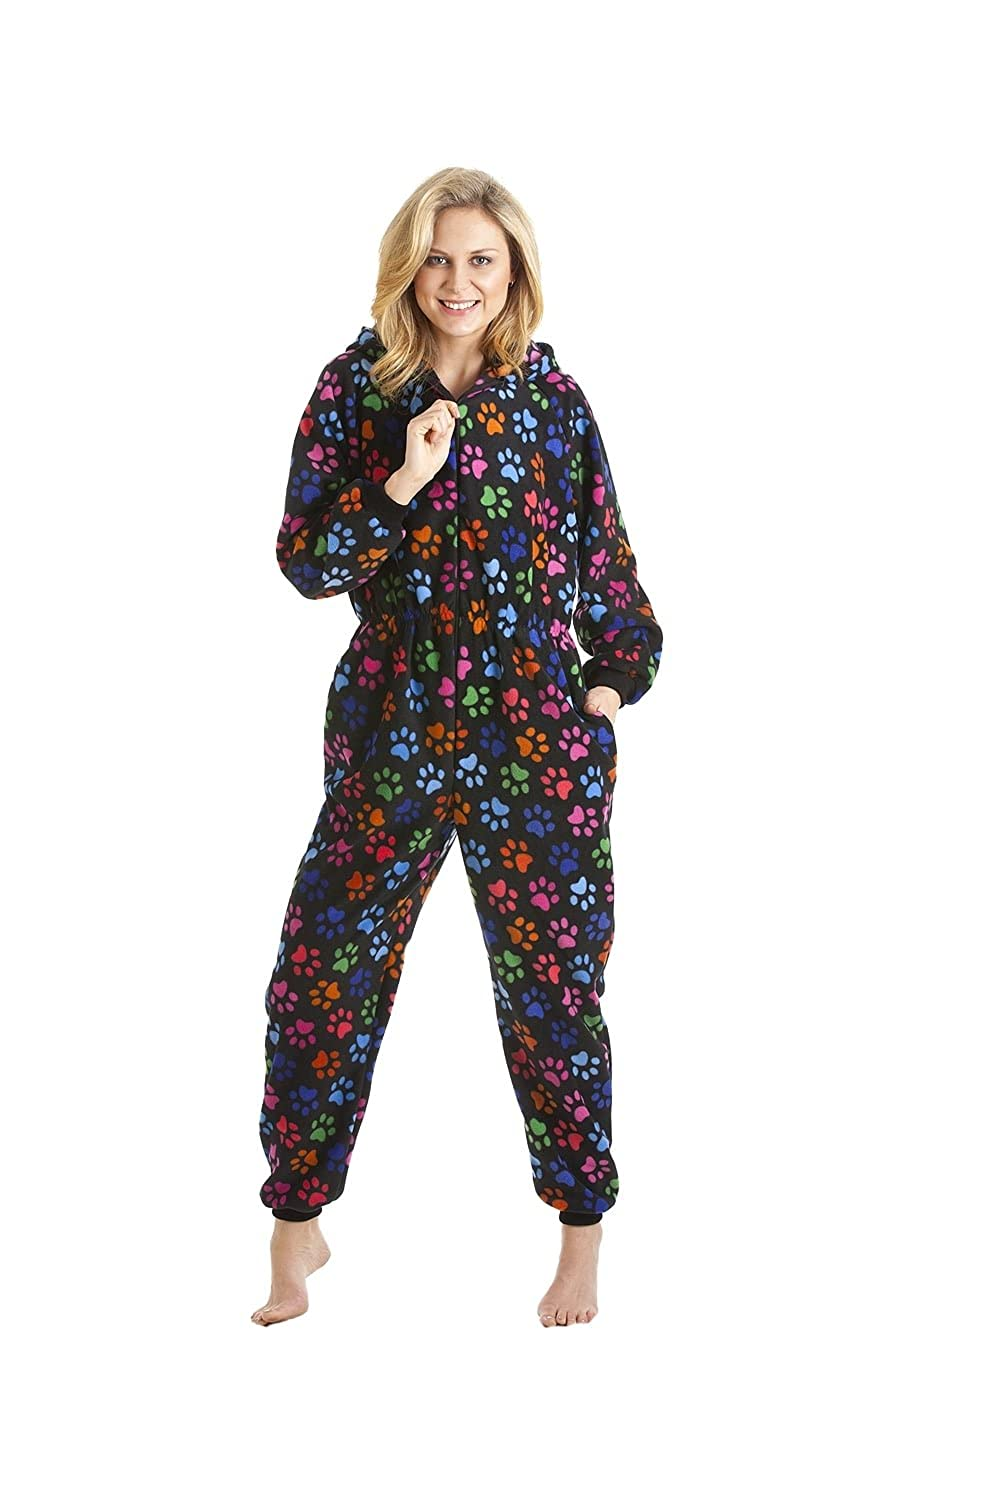 Camille Womens Ladies Black Colour Paw Print All In One Pyjamas